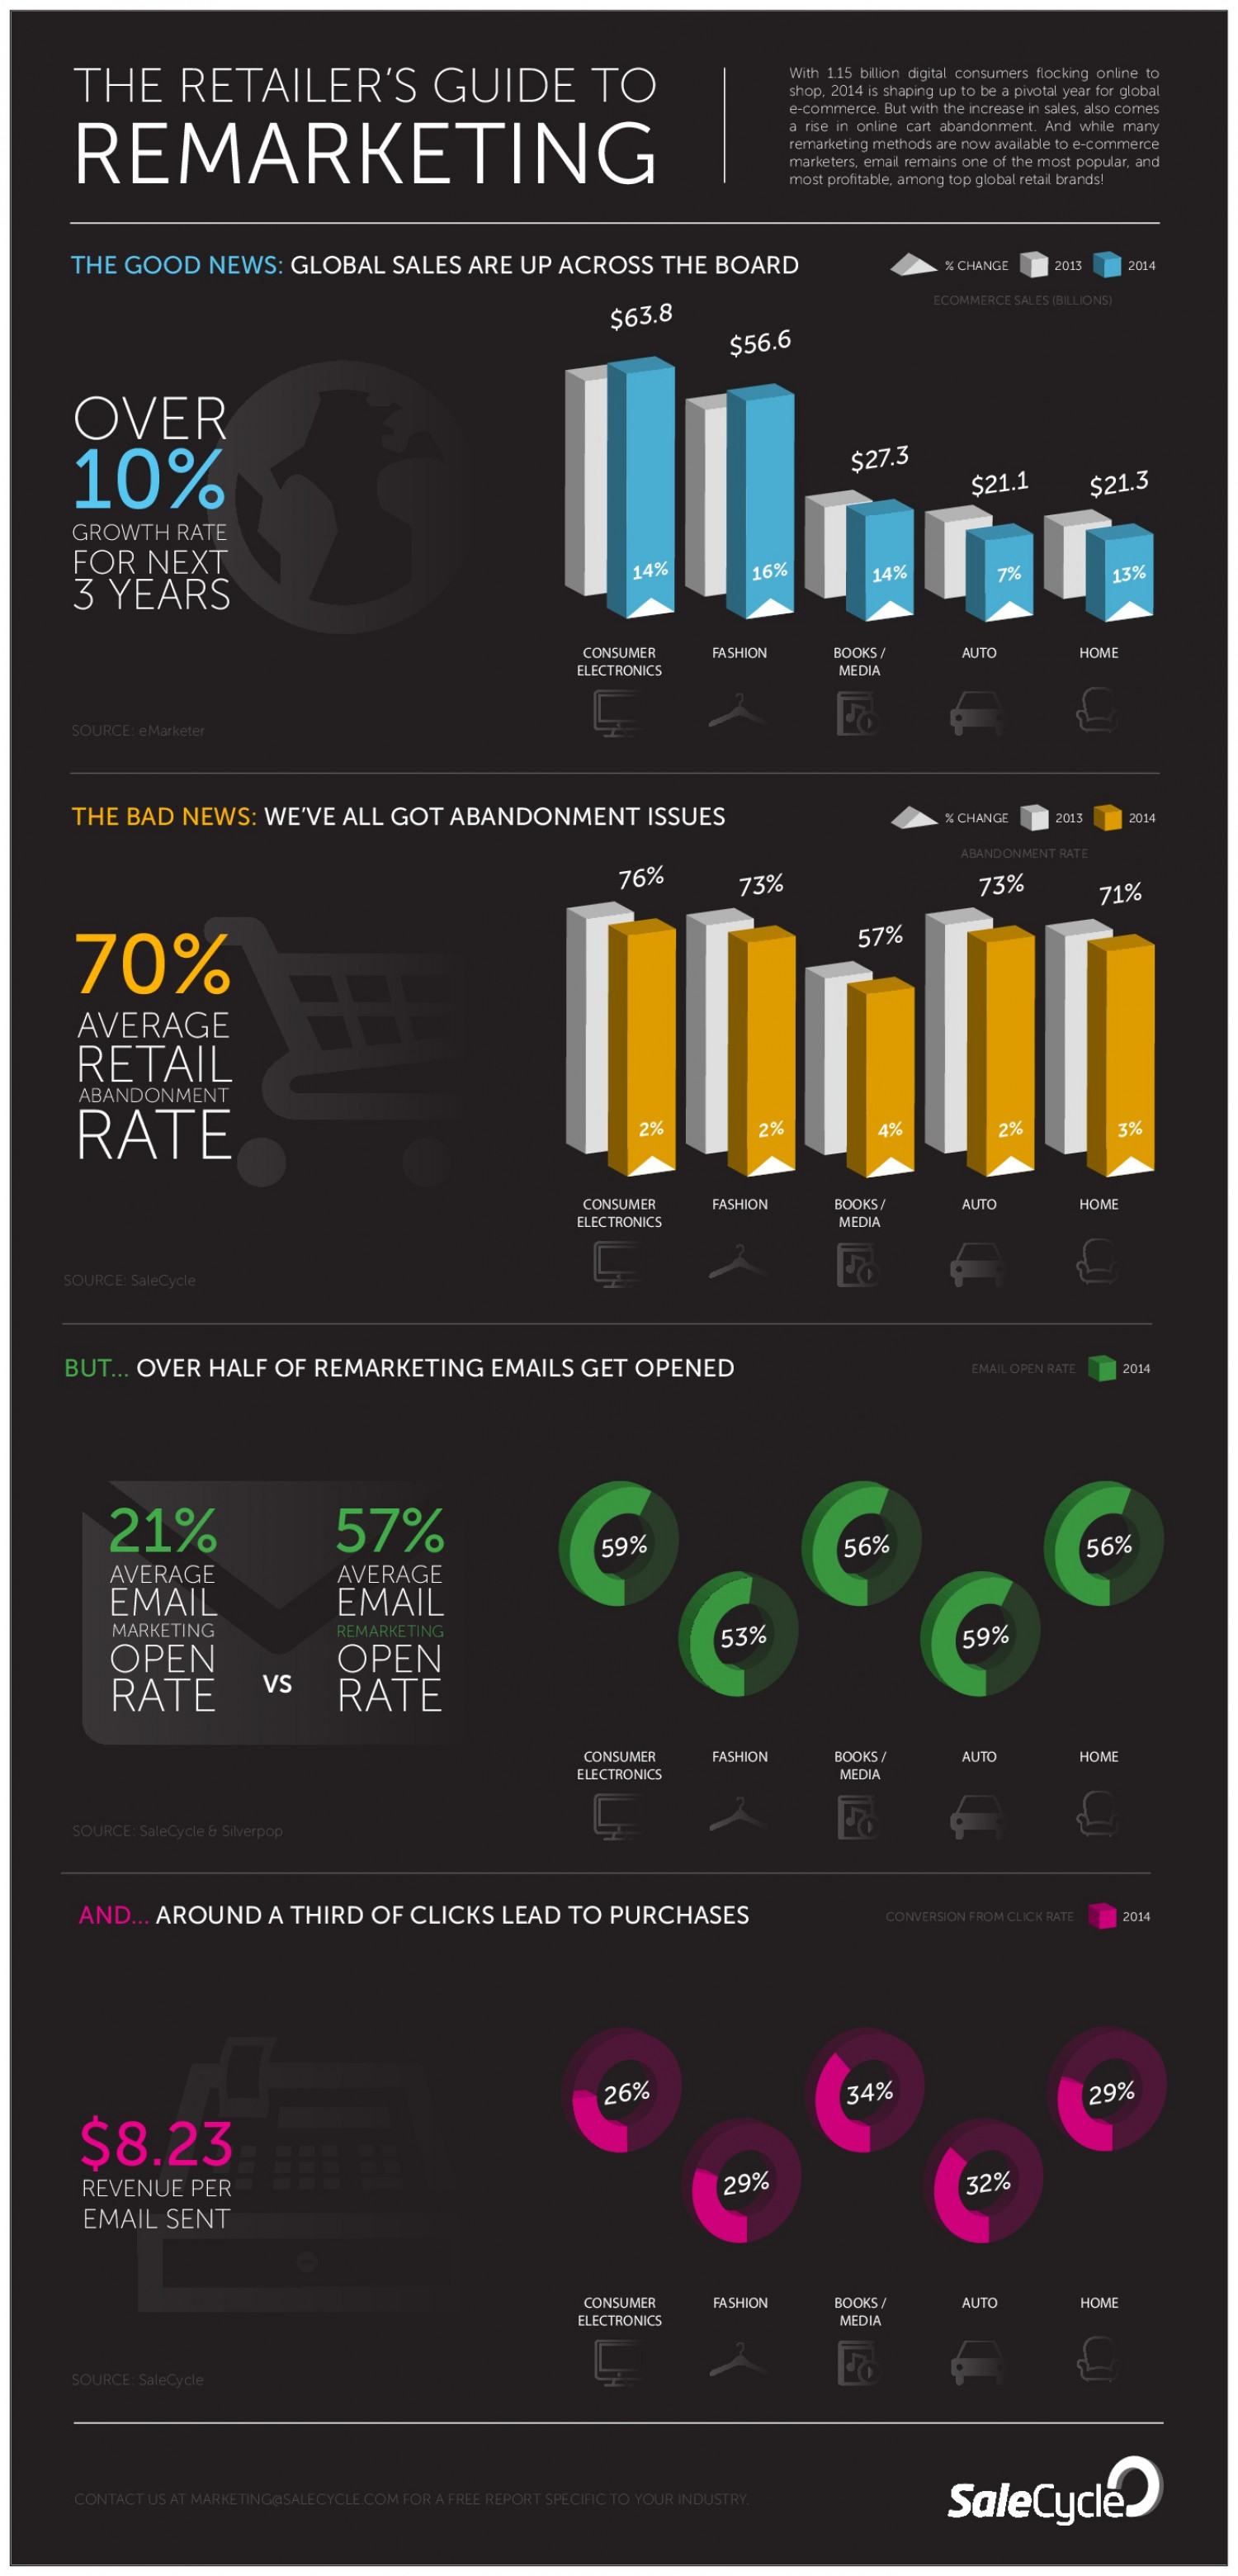 The Retailer's Guide to Remarketing Infographic